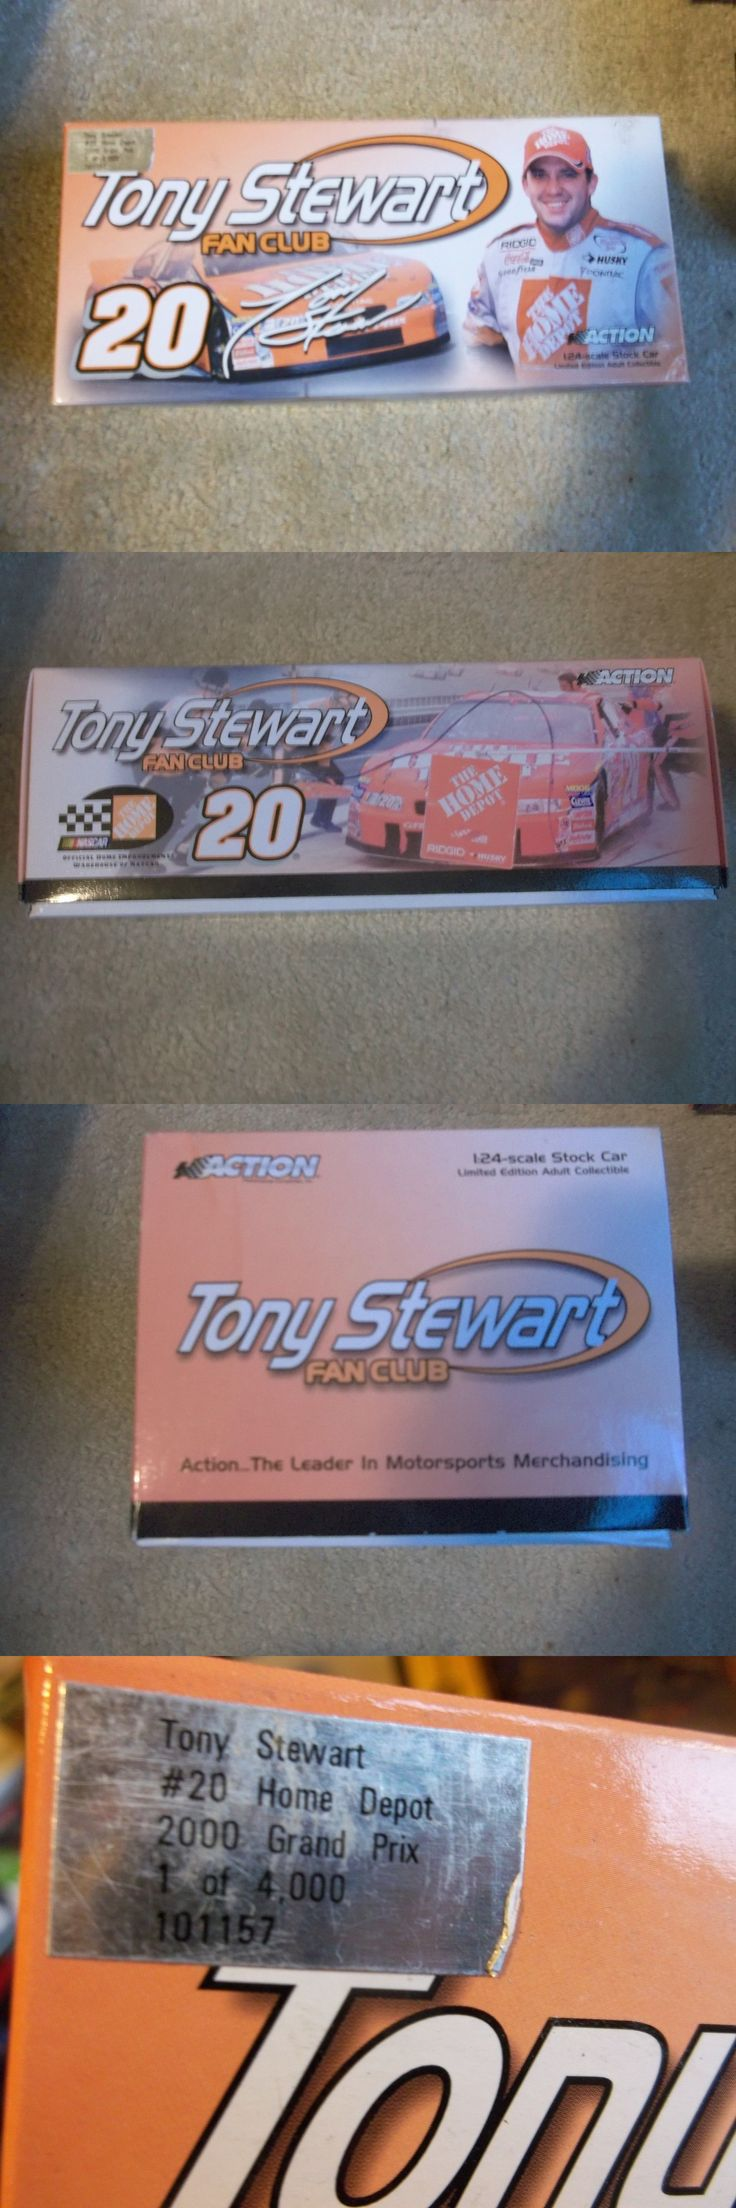 Formula 1 Cars 180270: 2000 Tony Stewart Home Depot Autographed Fan Club Car Action 1 24 Cwc -> BUY IT NOW ONLY: $75 on eBay!